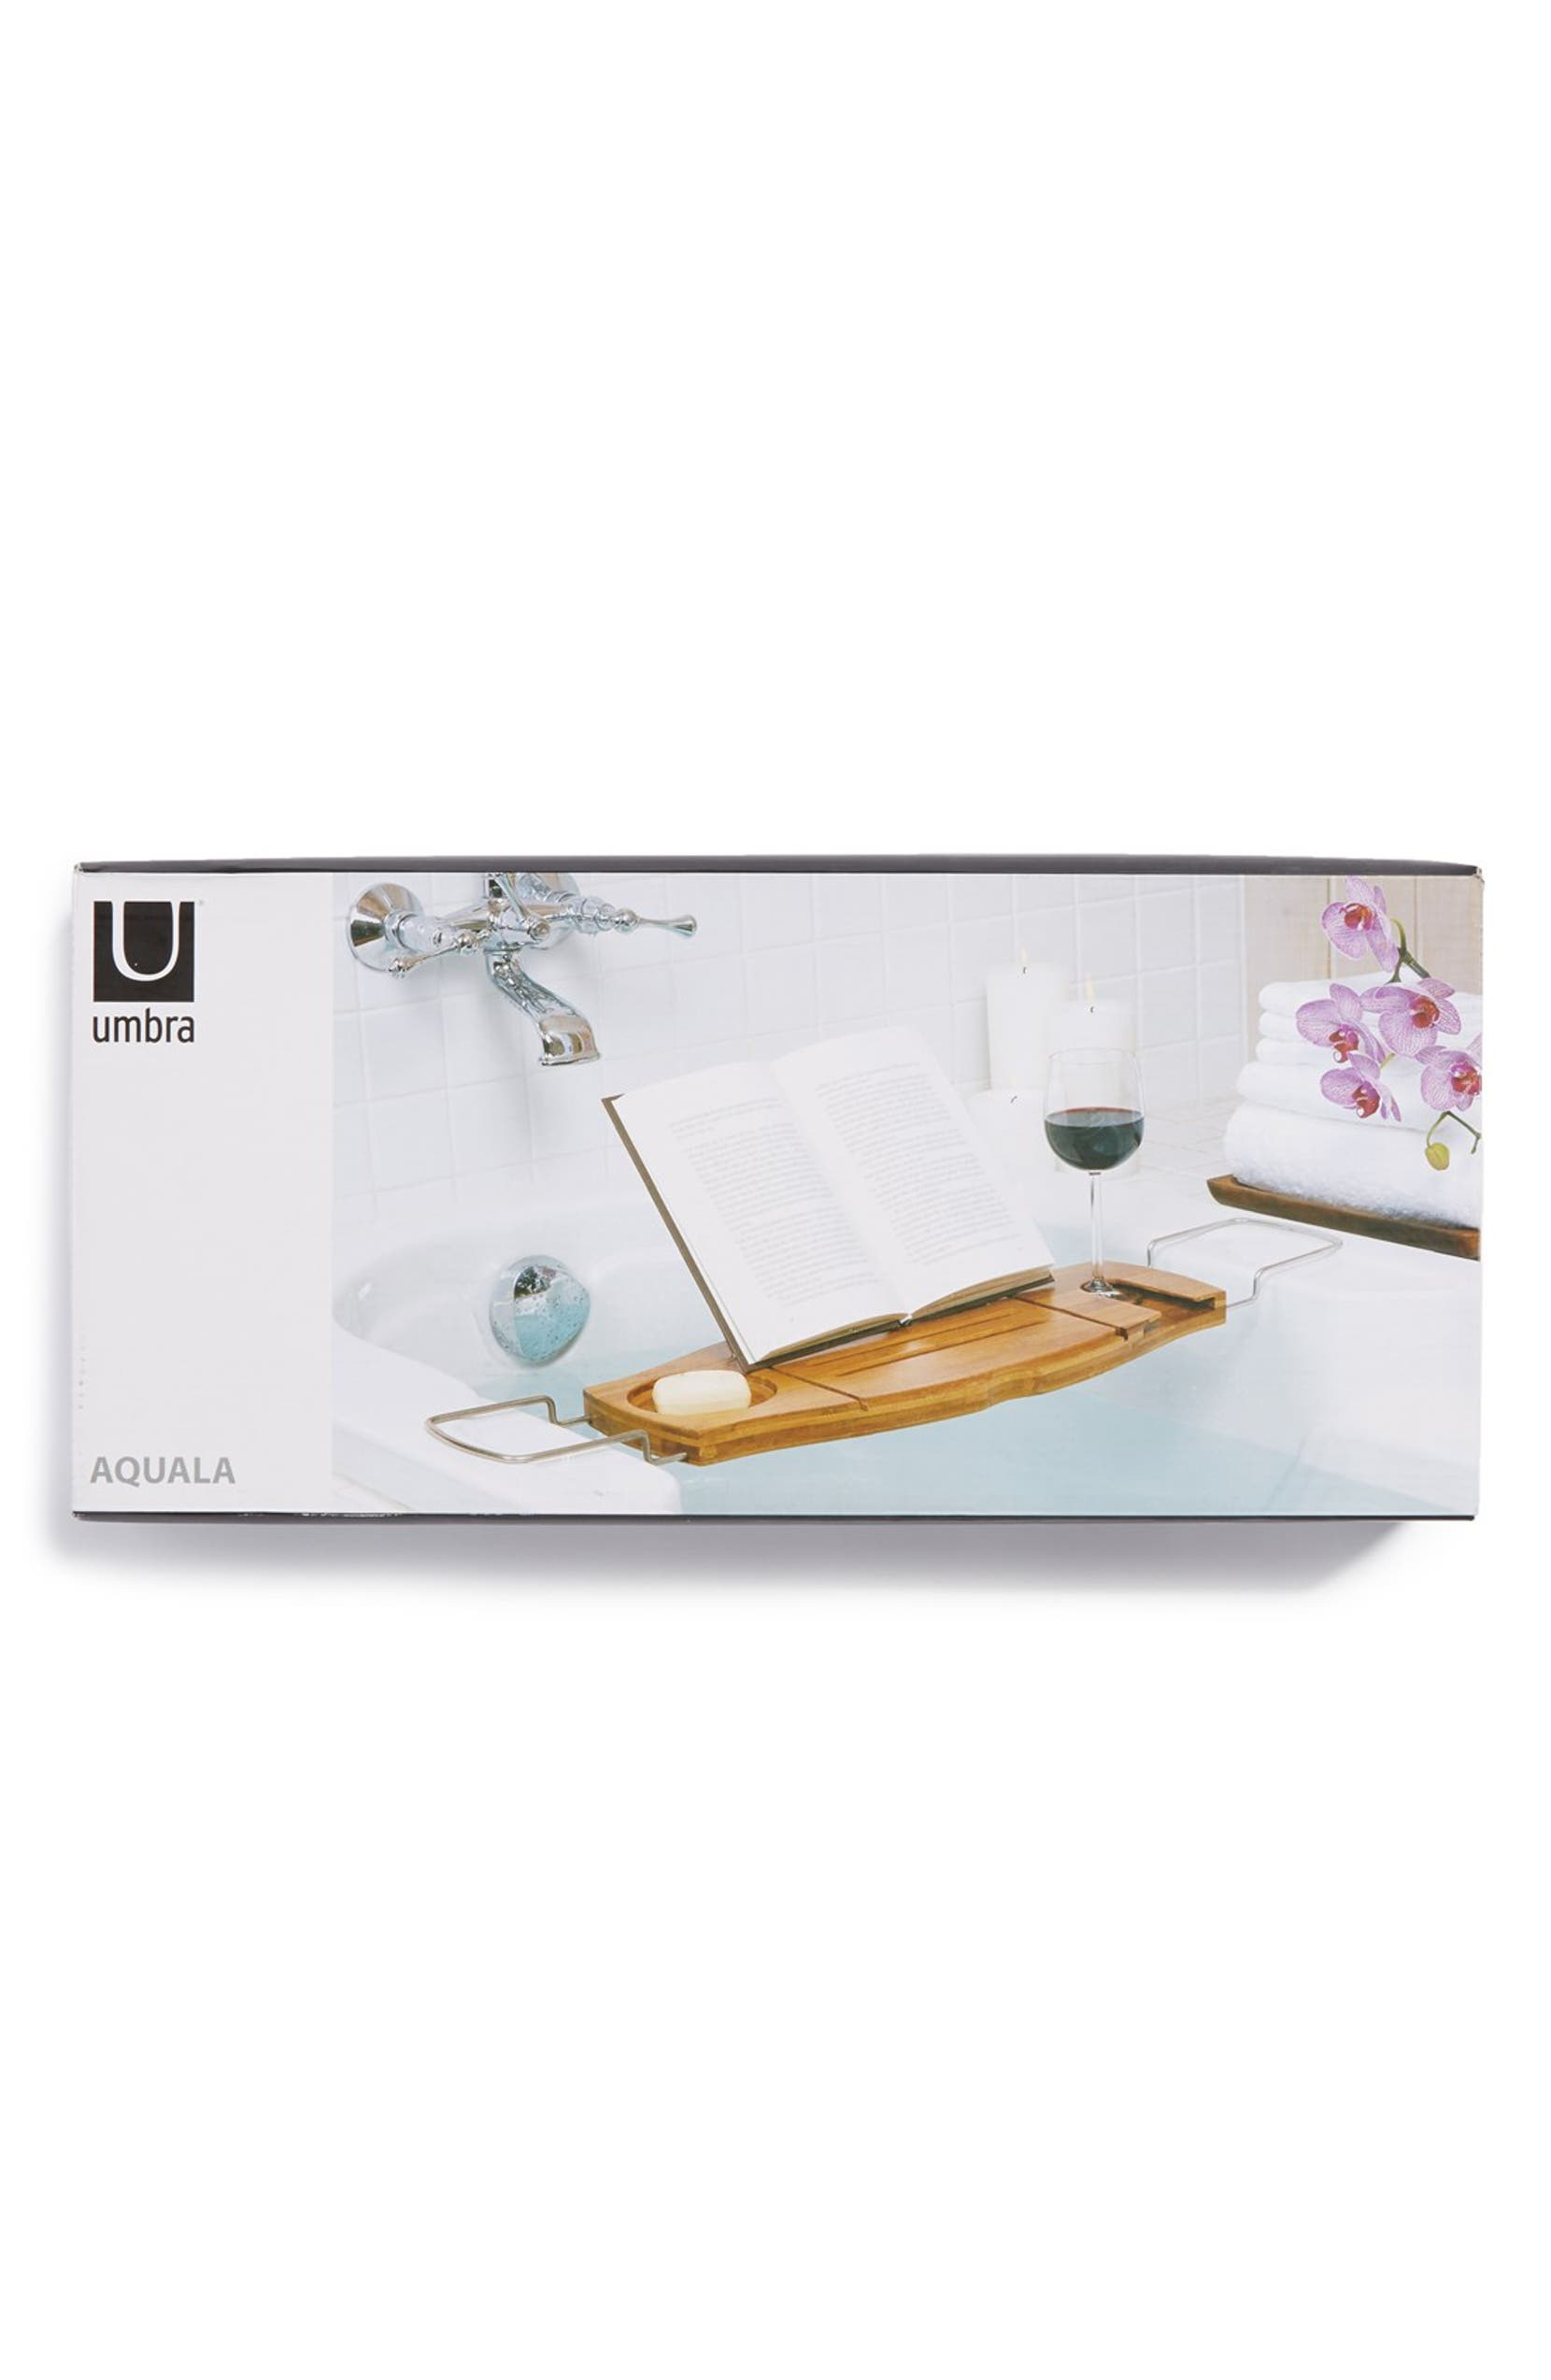 Umbra \'Aquala\' Bathtub Caddy | Nordstrom